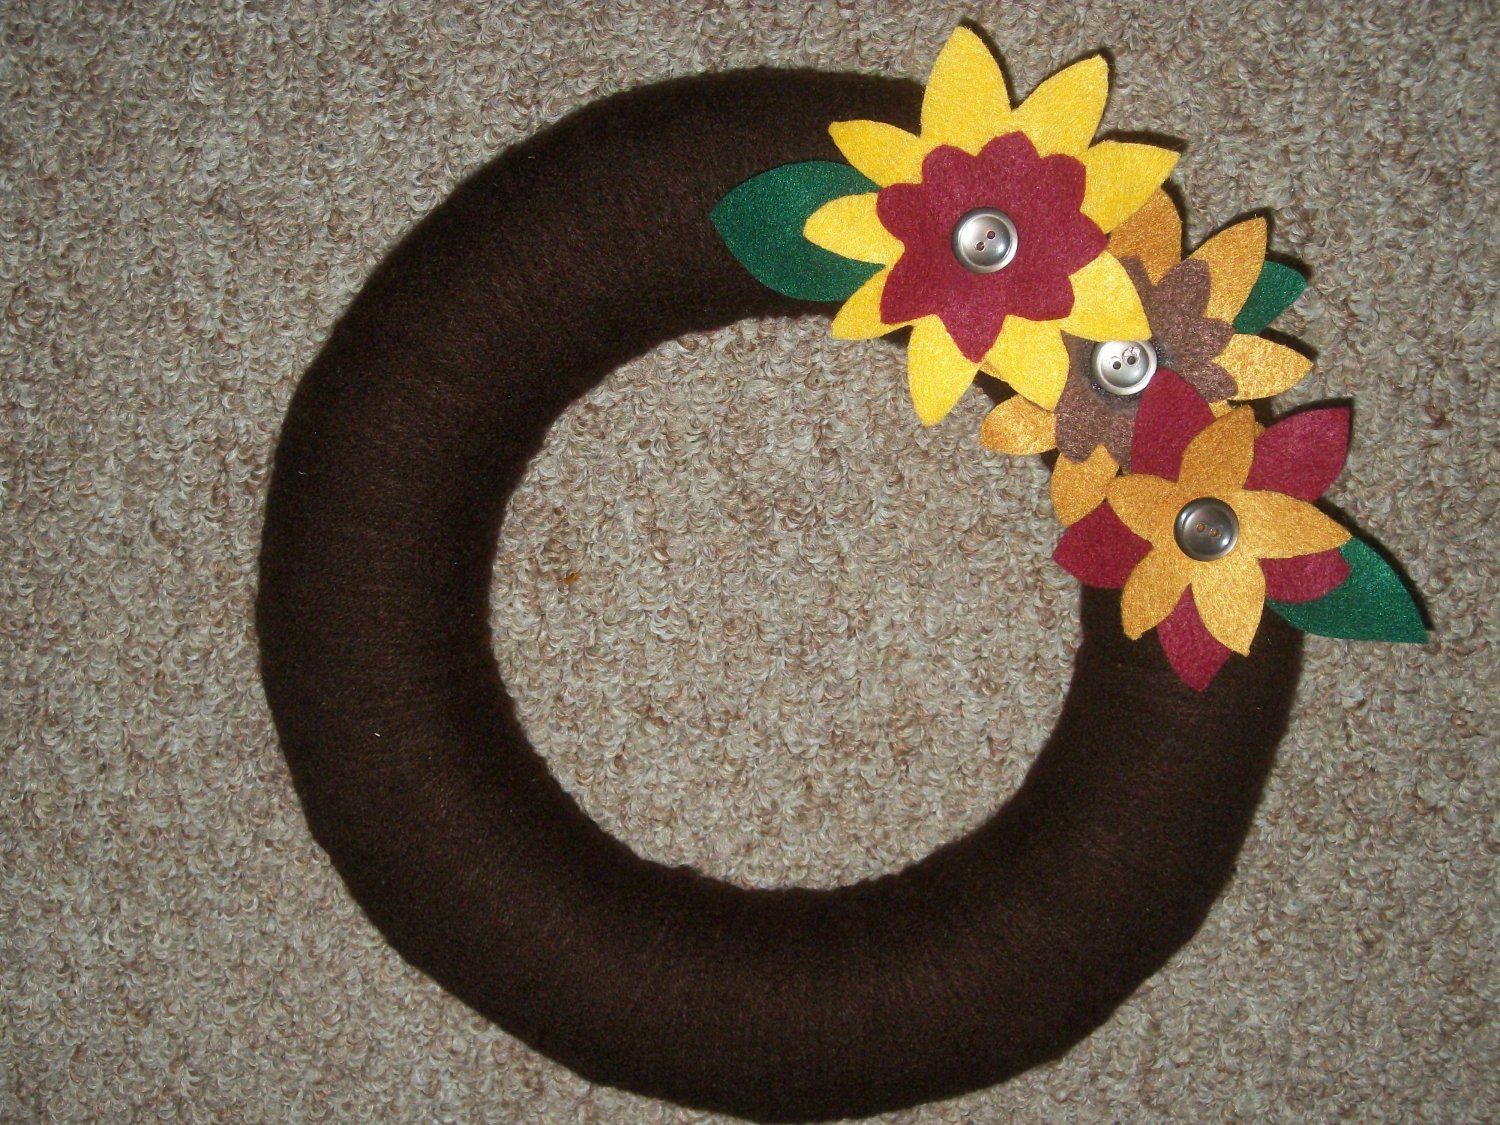 Hand made wreath with decorative flowers